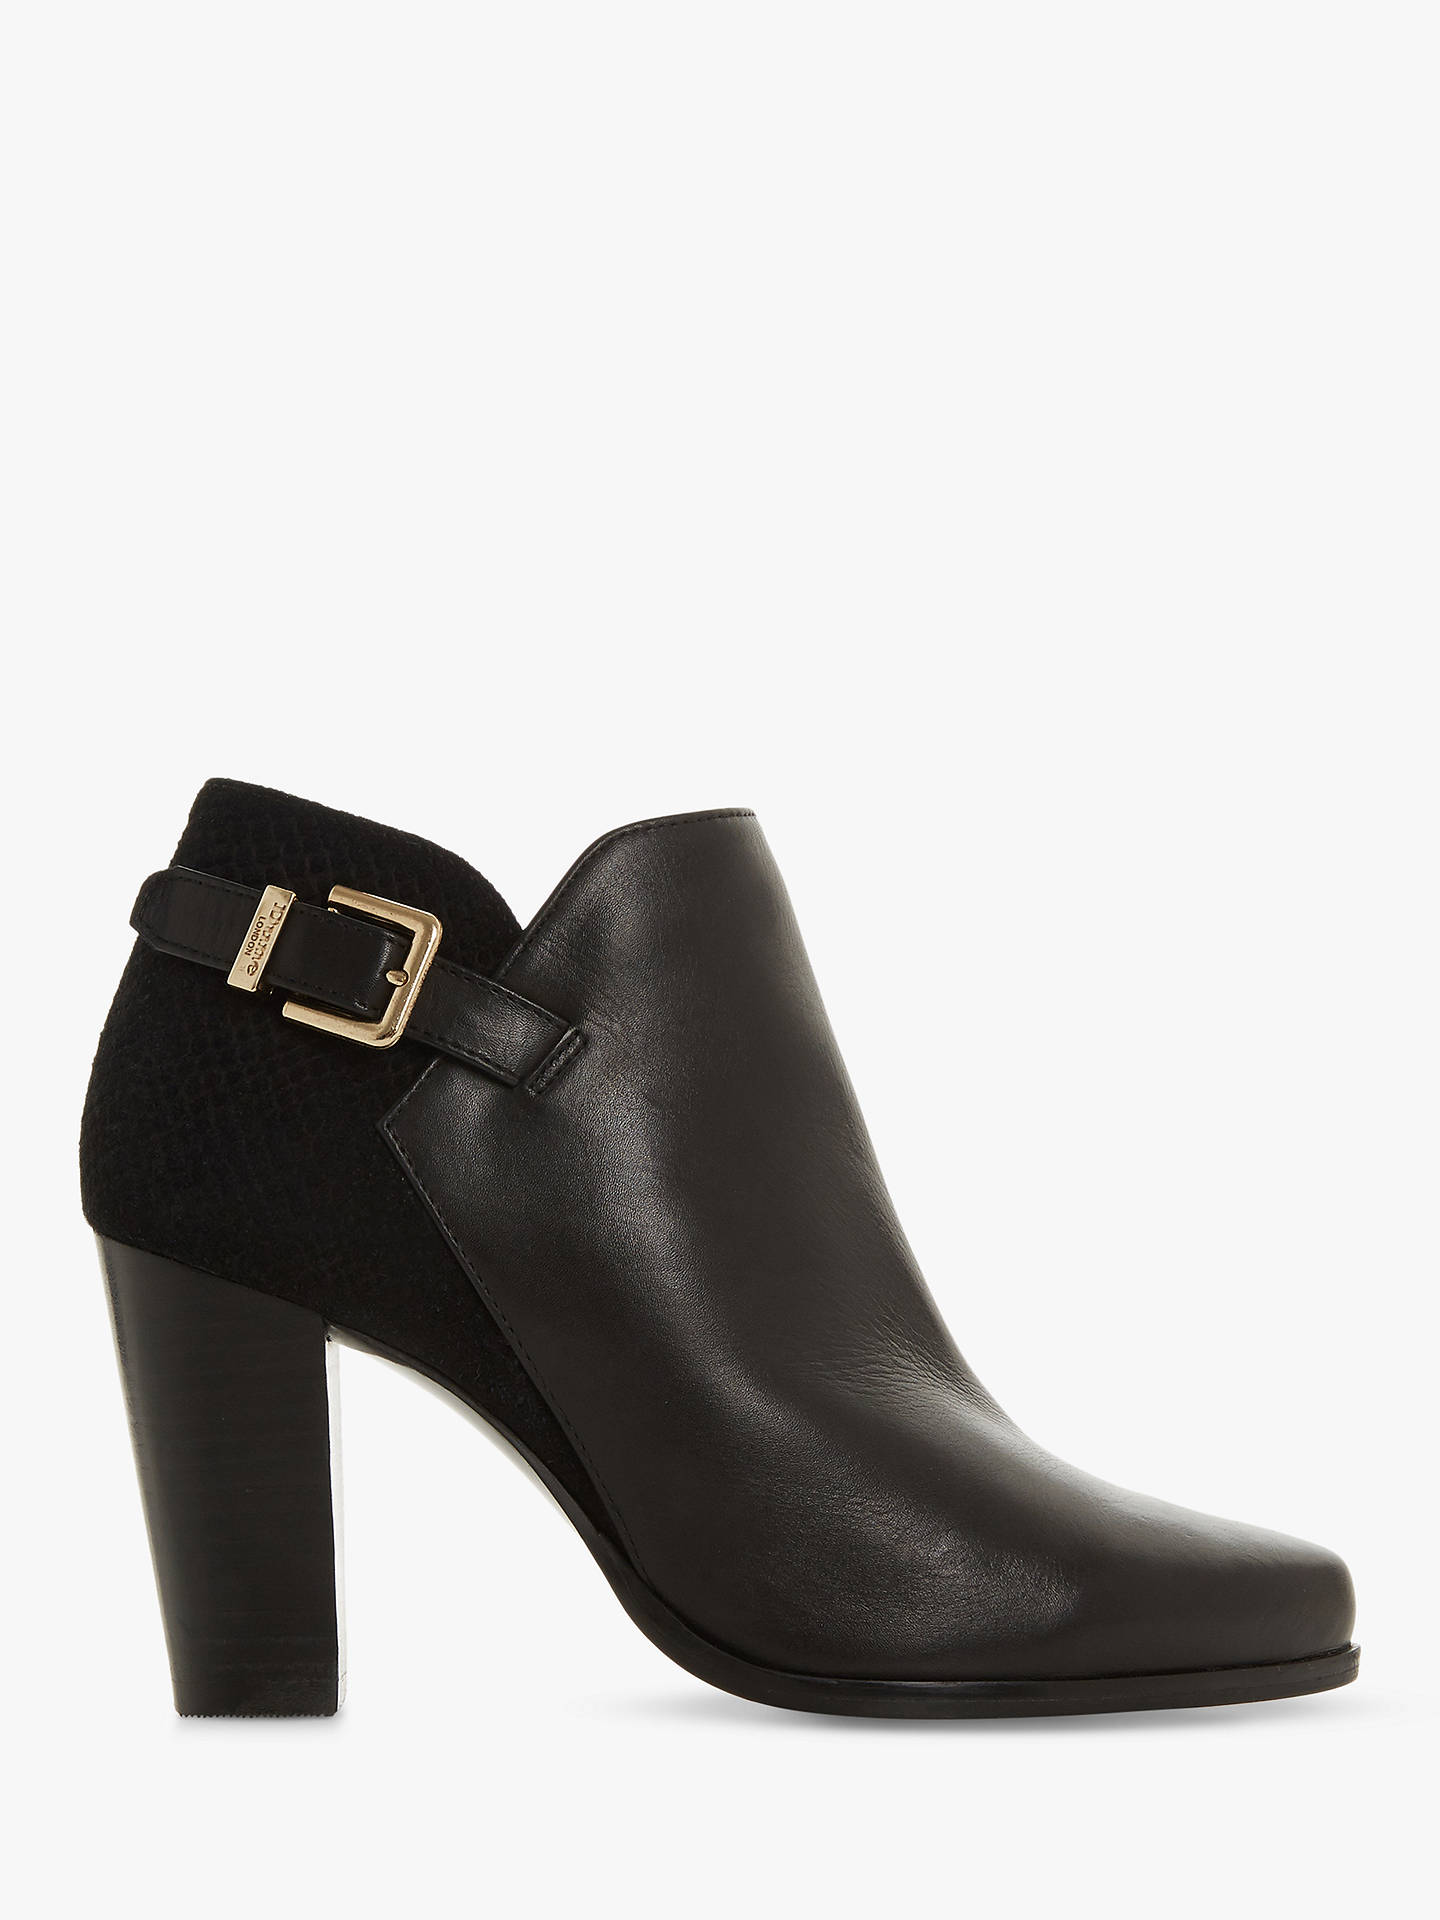 521a4f39b37a6 Buy Dune Oleria Wide Fit Ankle Boots, Black Leather, 4 Online at johnlewis.